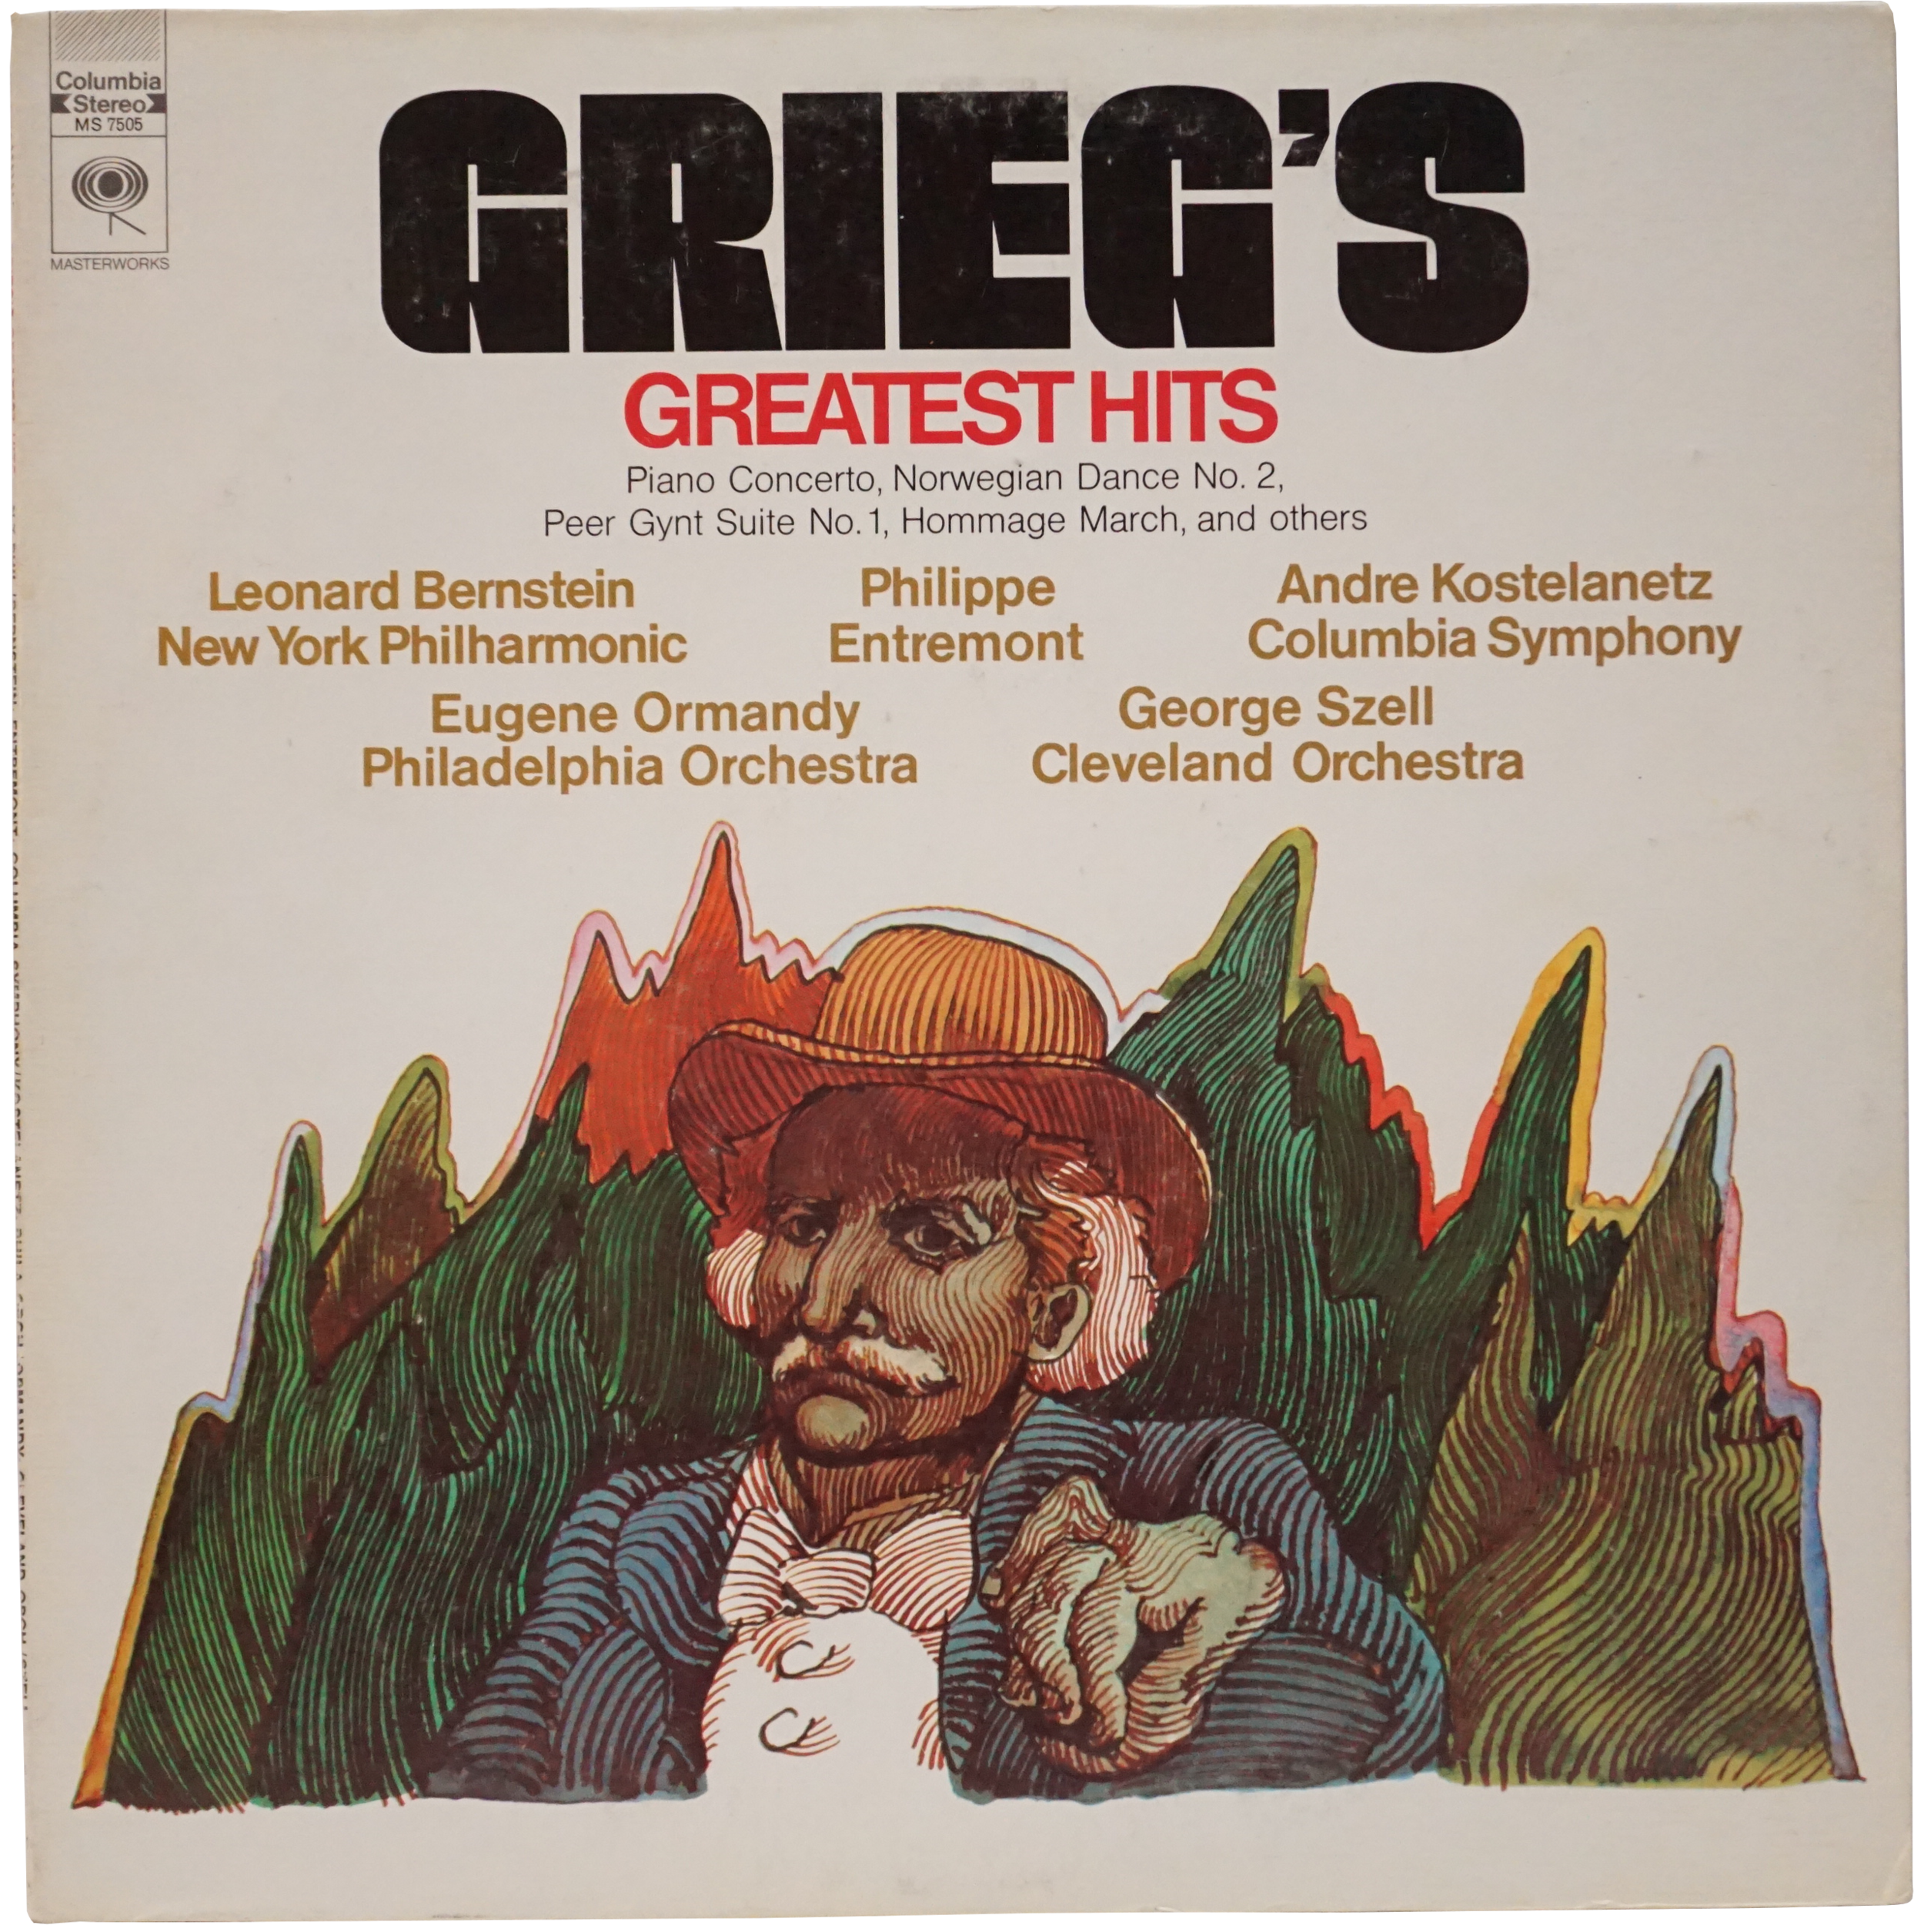 WLWLTDOO-1969-LP-GRIEGS_GREATEST_HITS-FRONT-MS7505.png